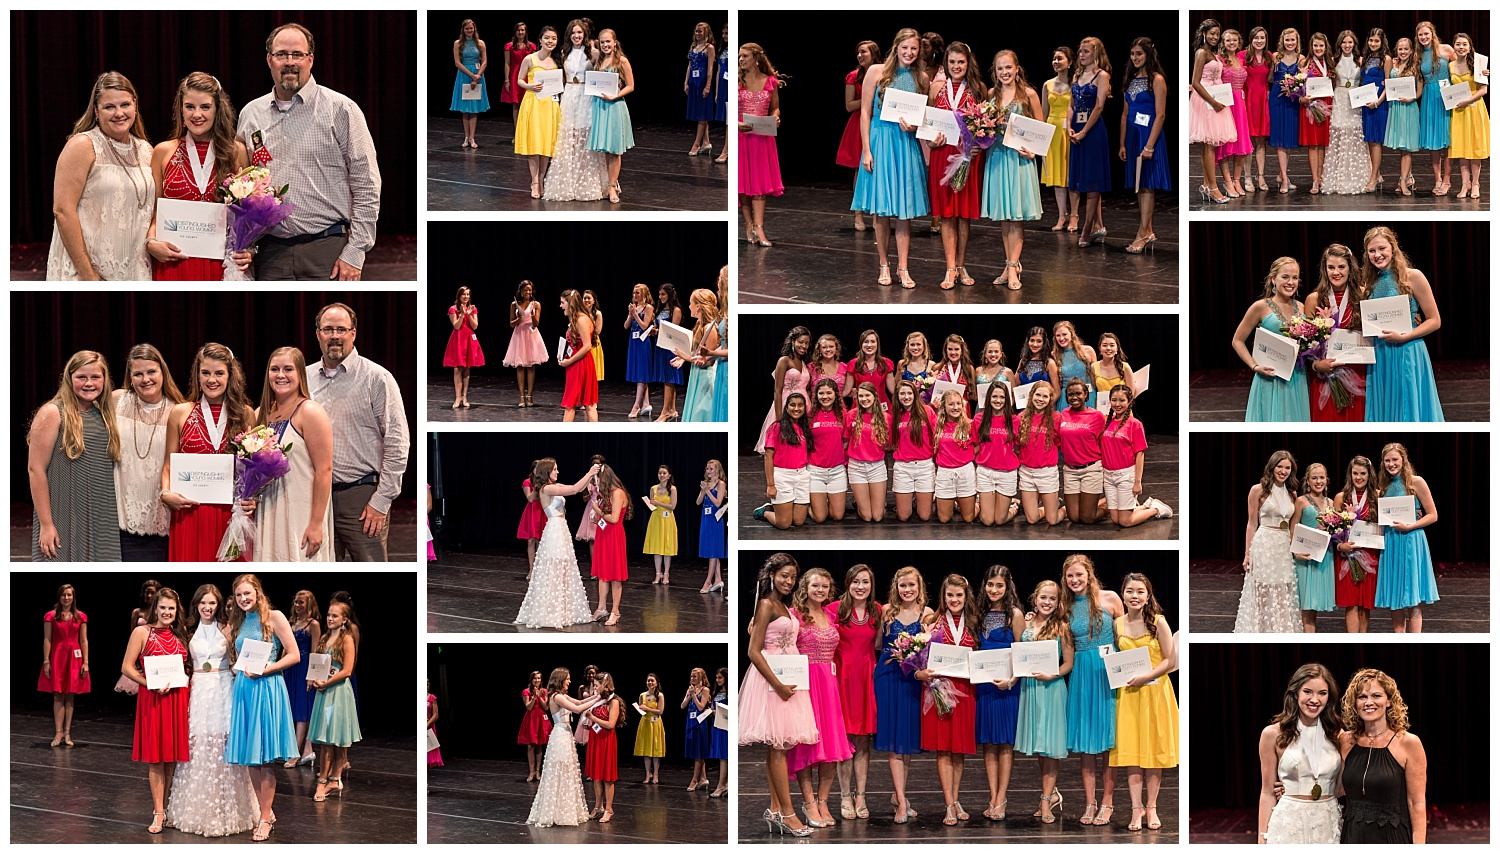 lee county alabama distinguished young women 2017 awards - lauren beesley photography